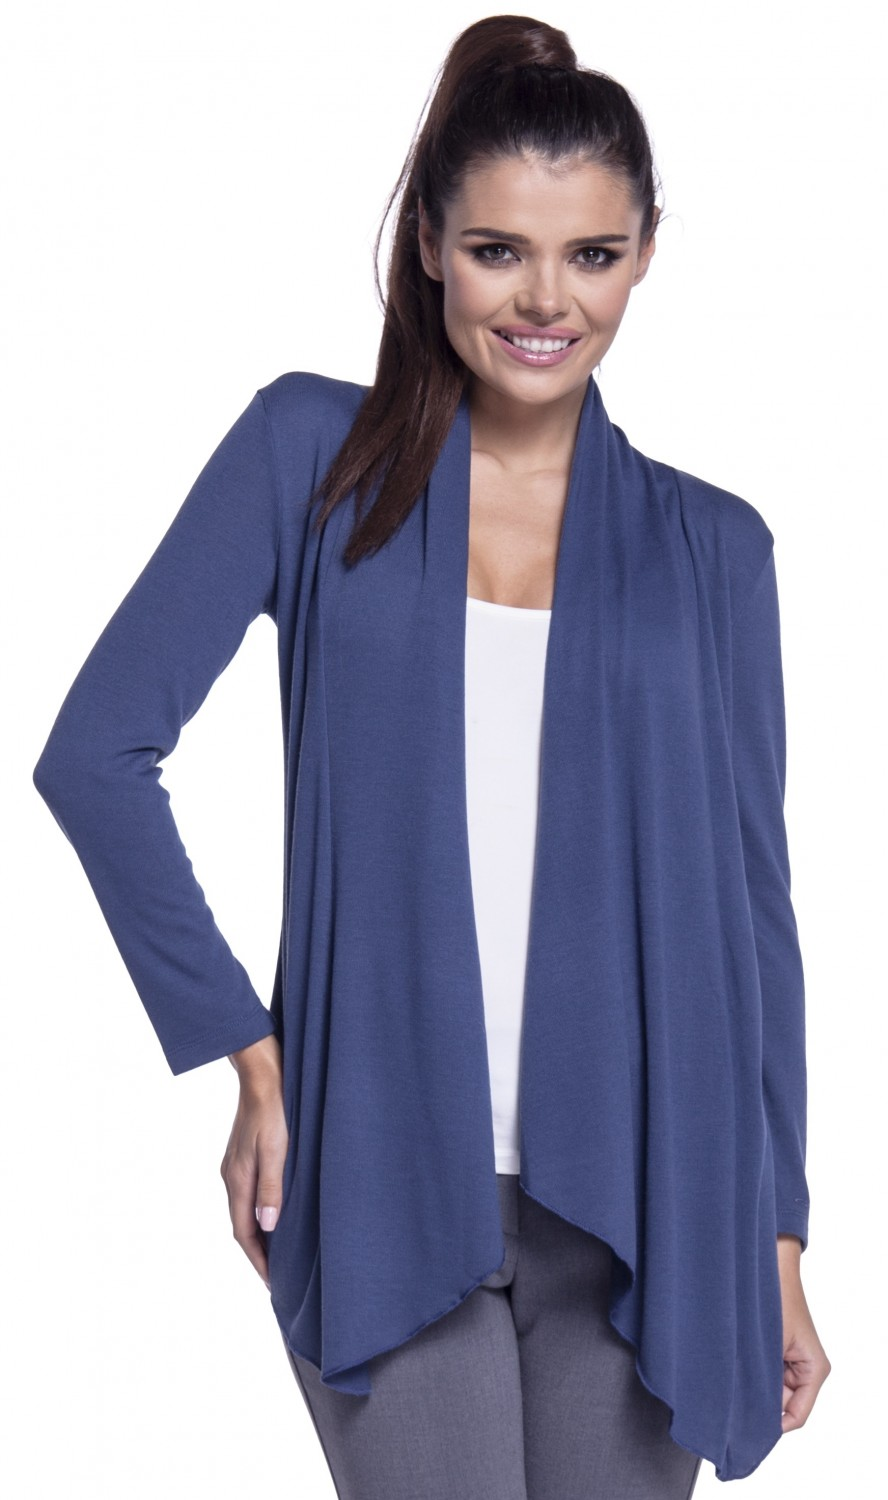 Zeta Ville - Women's Waterfall Thin Knitted Jacket Cardigan Draped ...